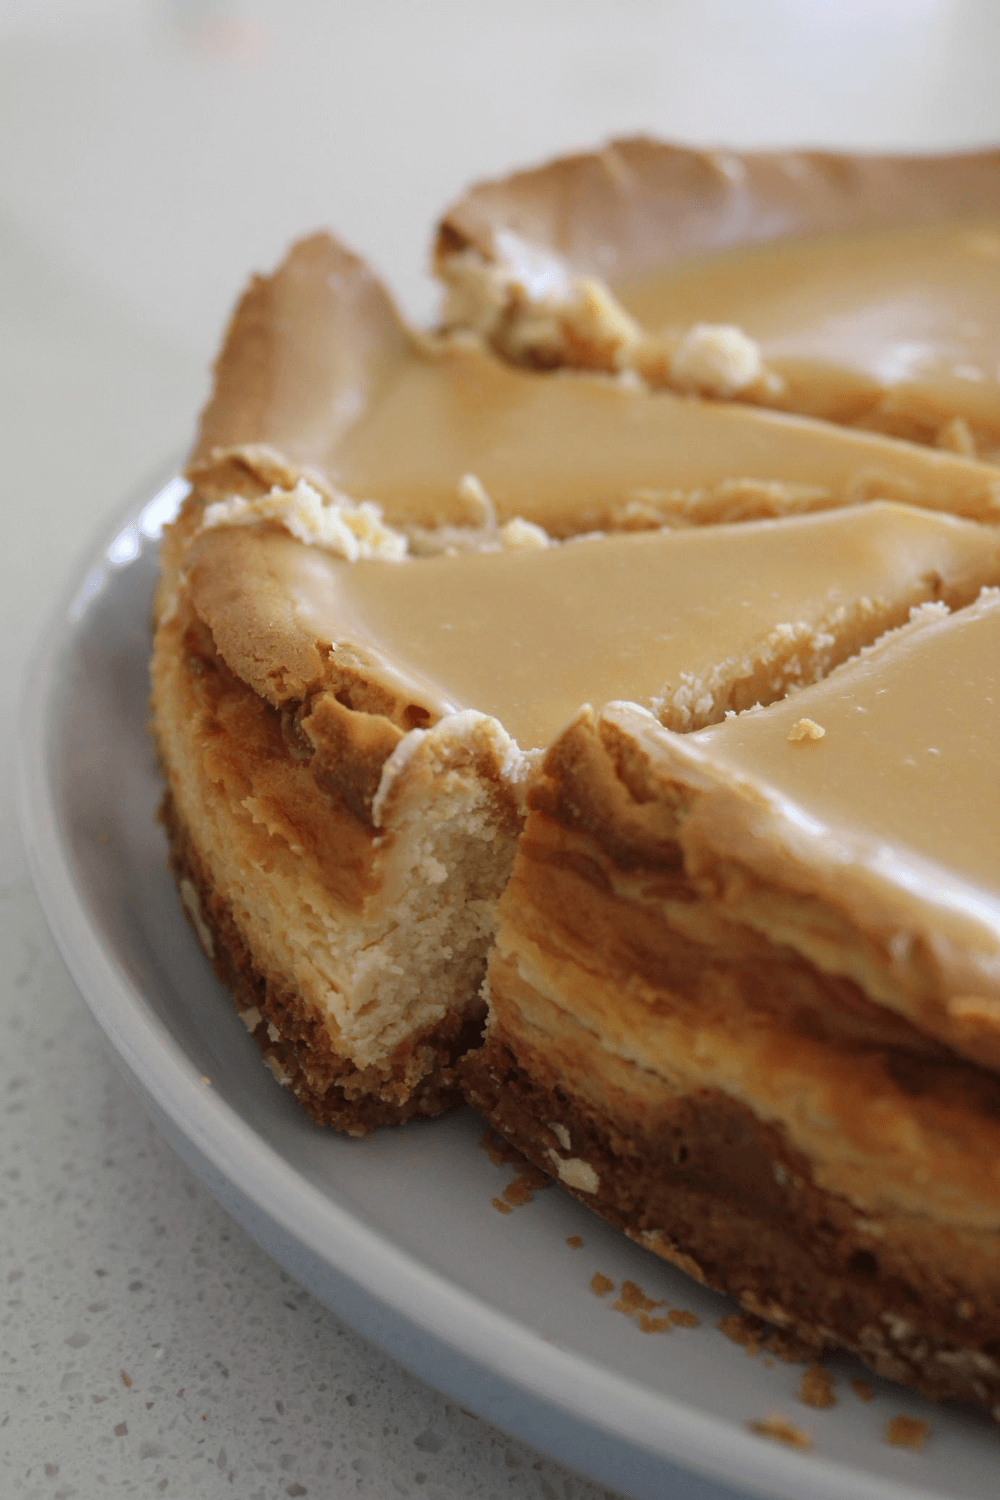 Baked cheesecakes are amazing as it is, but they are even better when Caramilk is added. This Caramilk baked cheesecake is about to become your new favourite cheesecake.